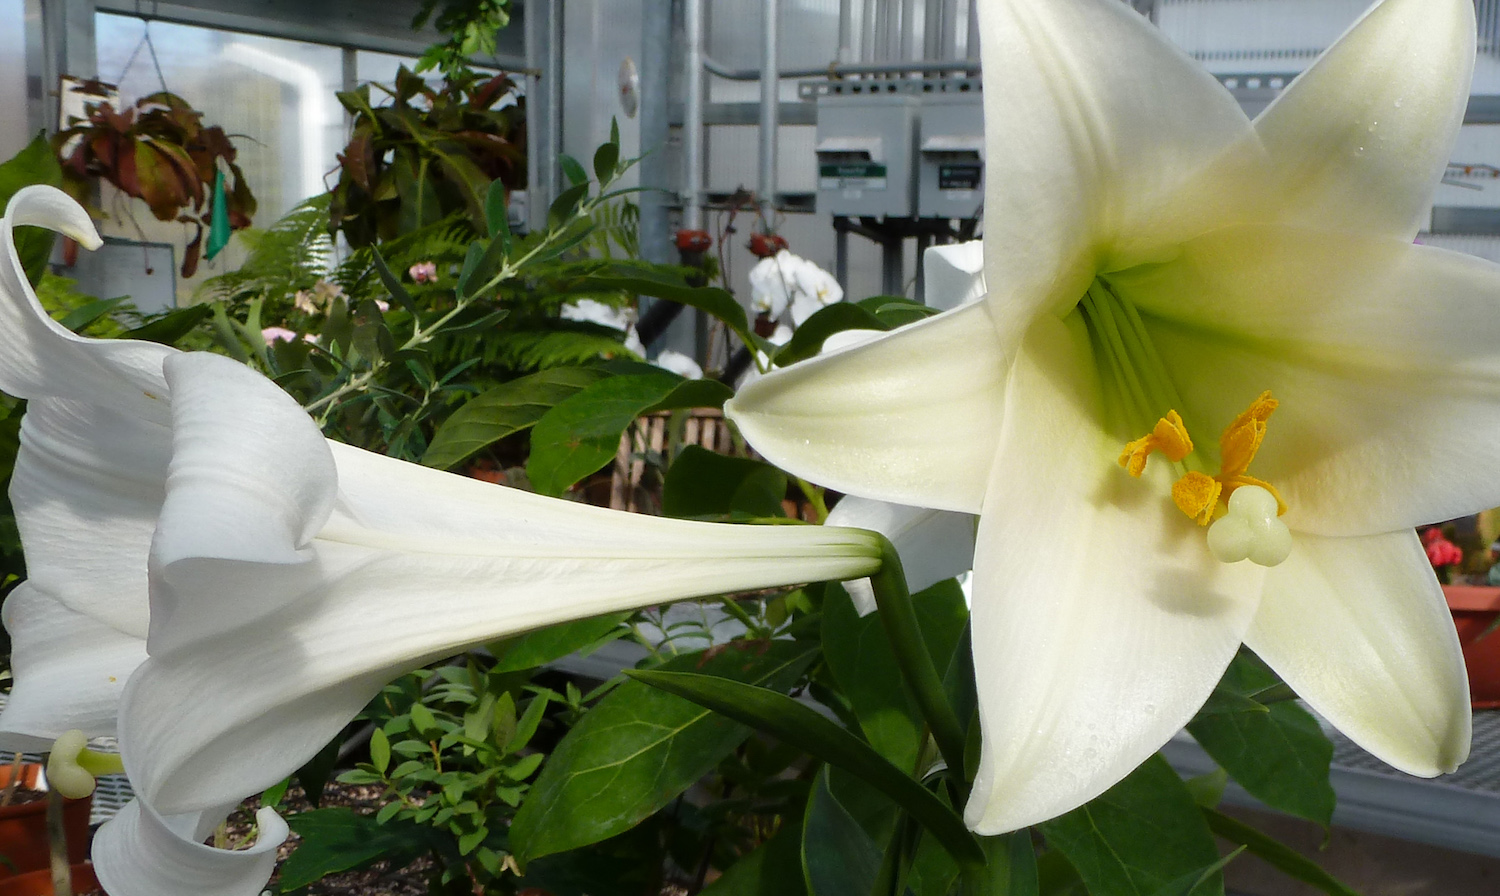 Easter lily facts and care the christopher farm gardens history care of the easter lily izmirmasajfo